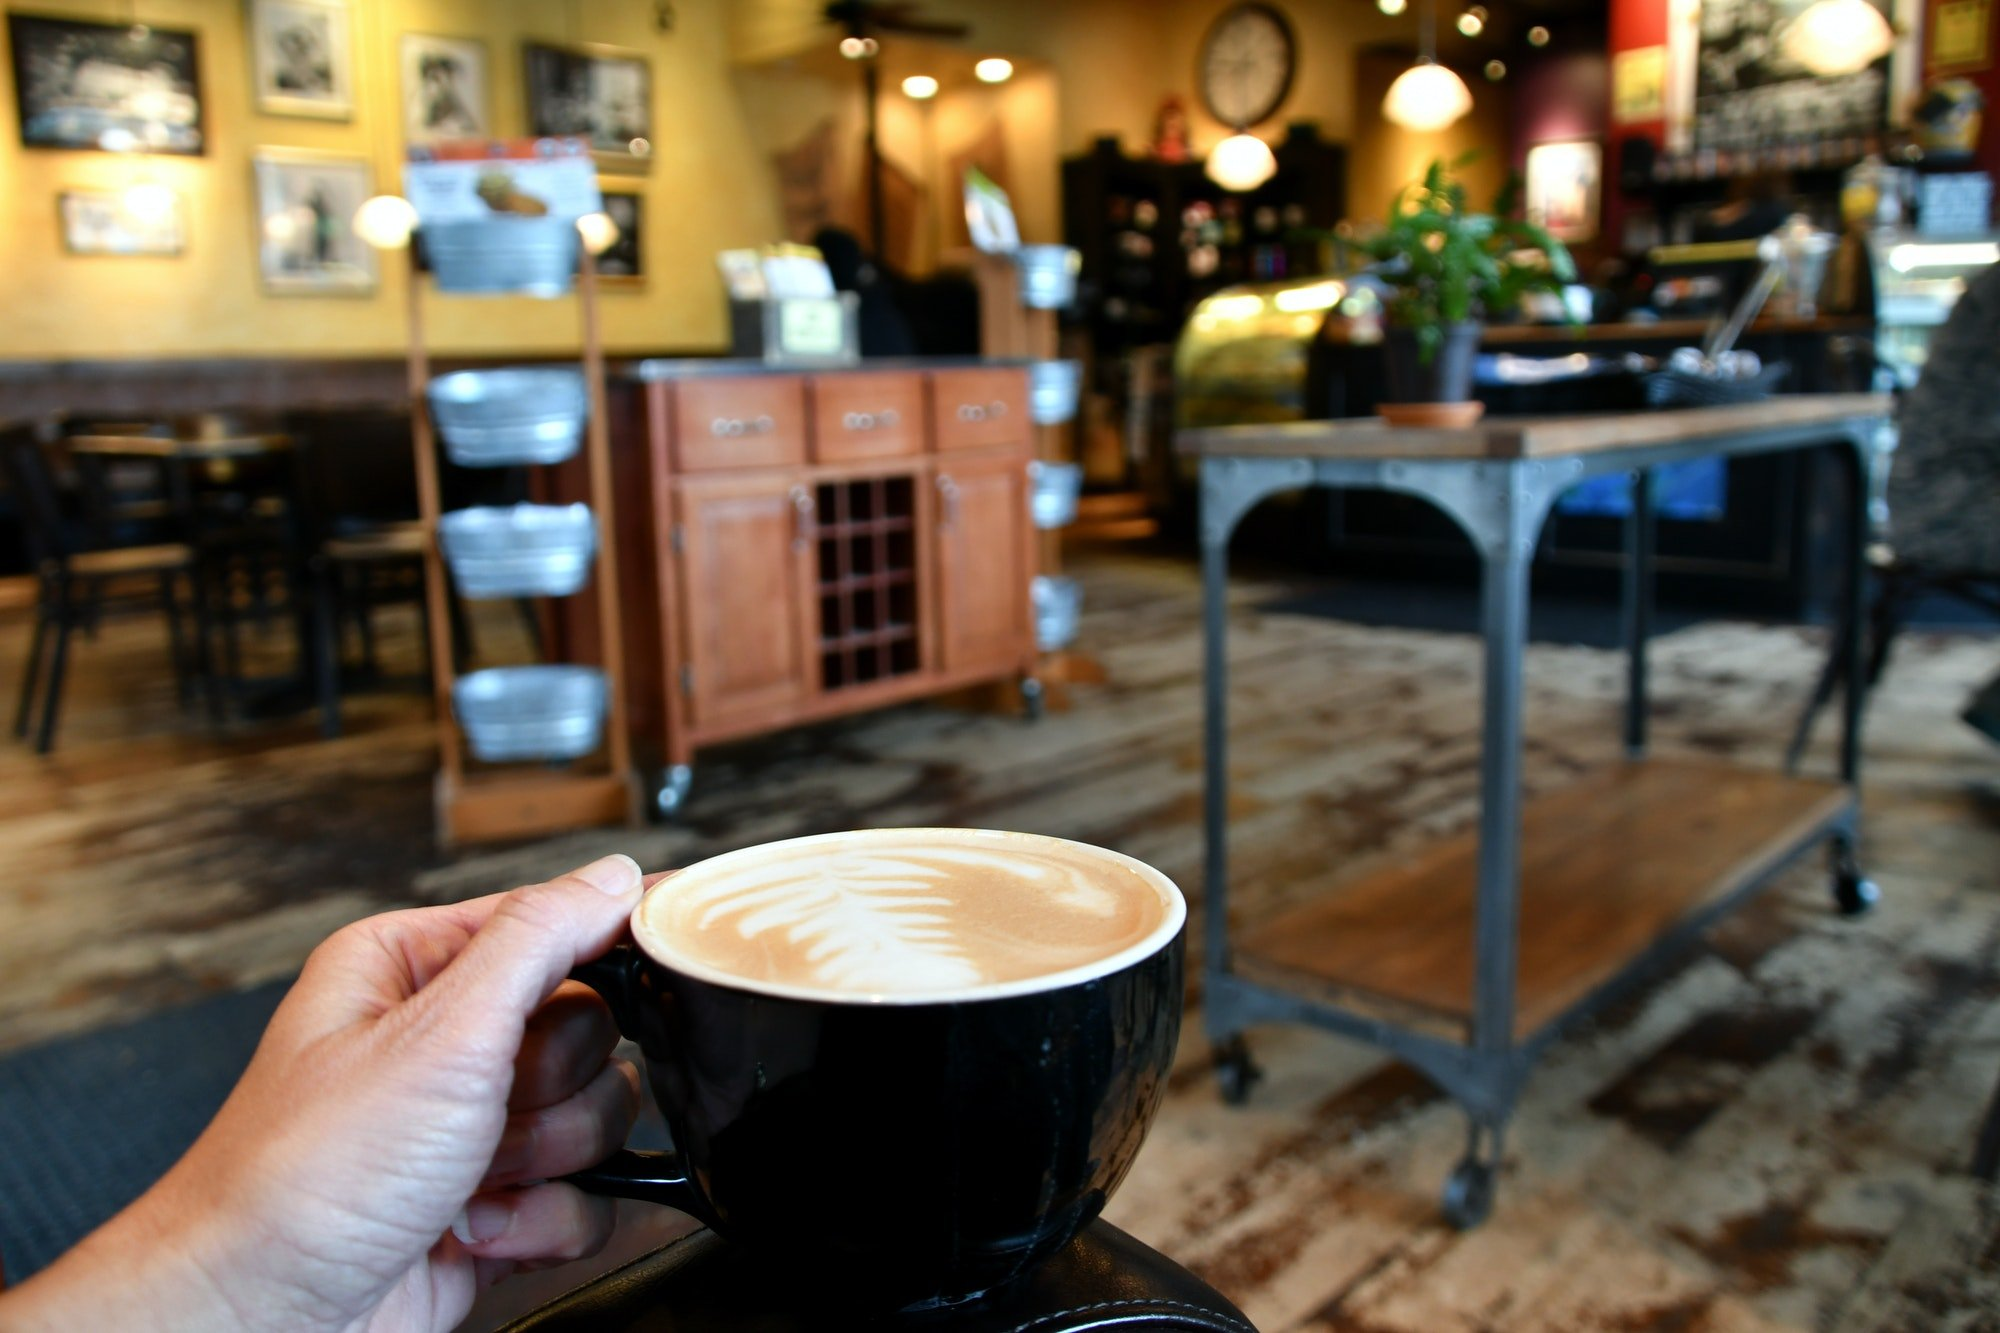 Relaxing in a colorful local business coffee shop with a hot coffee latte - real people